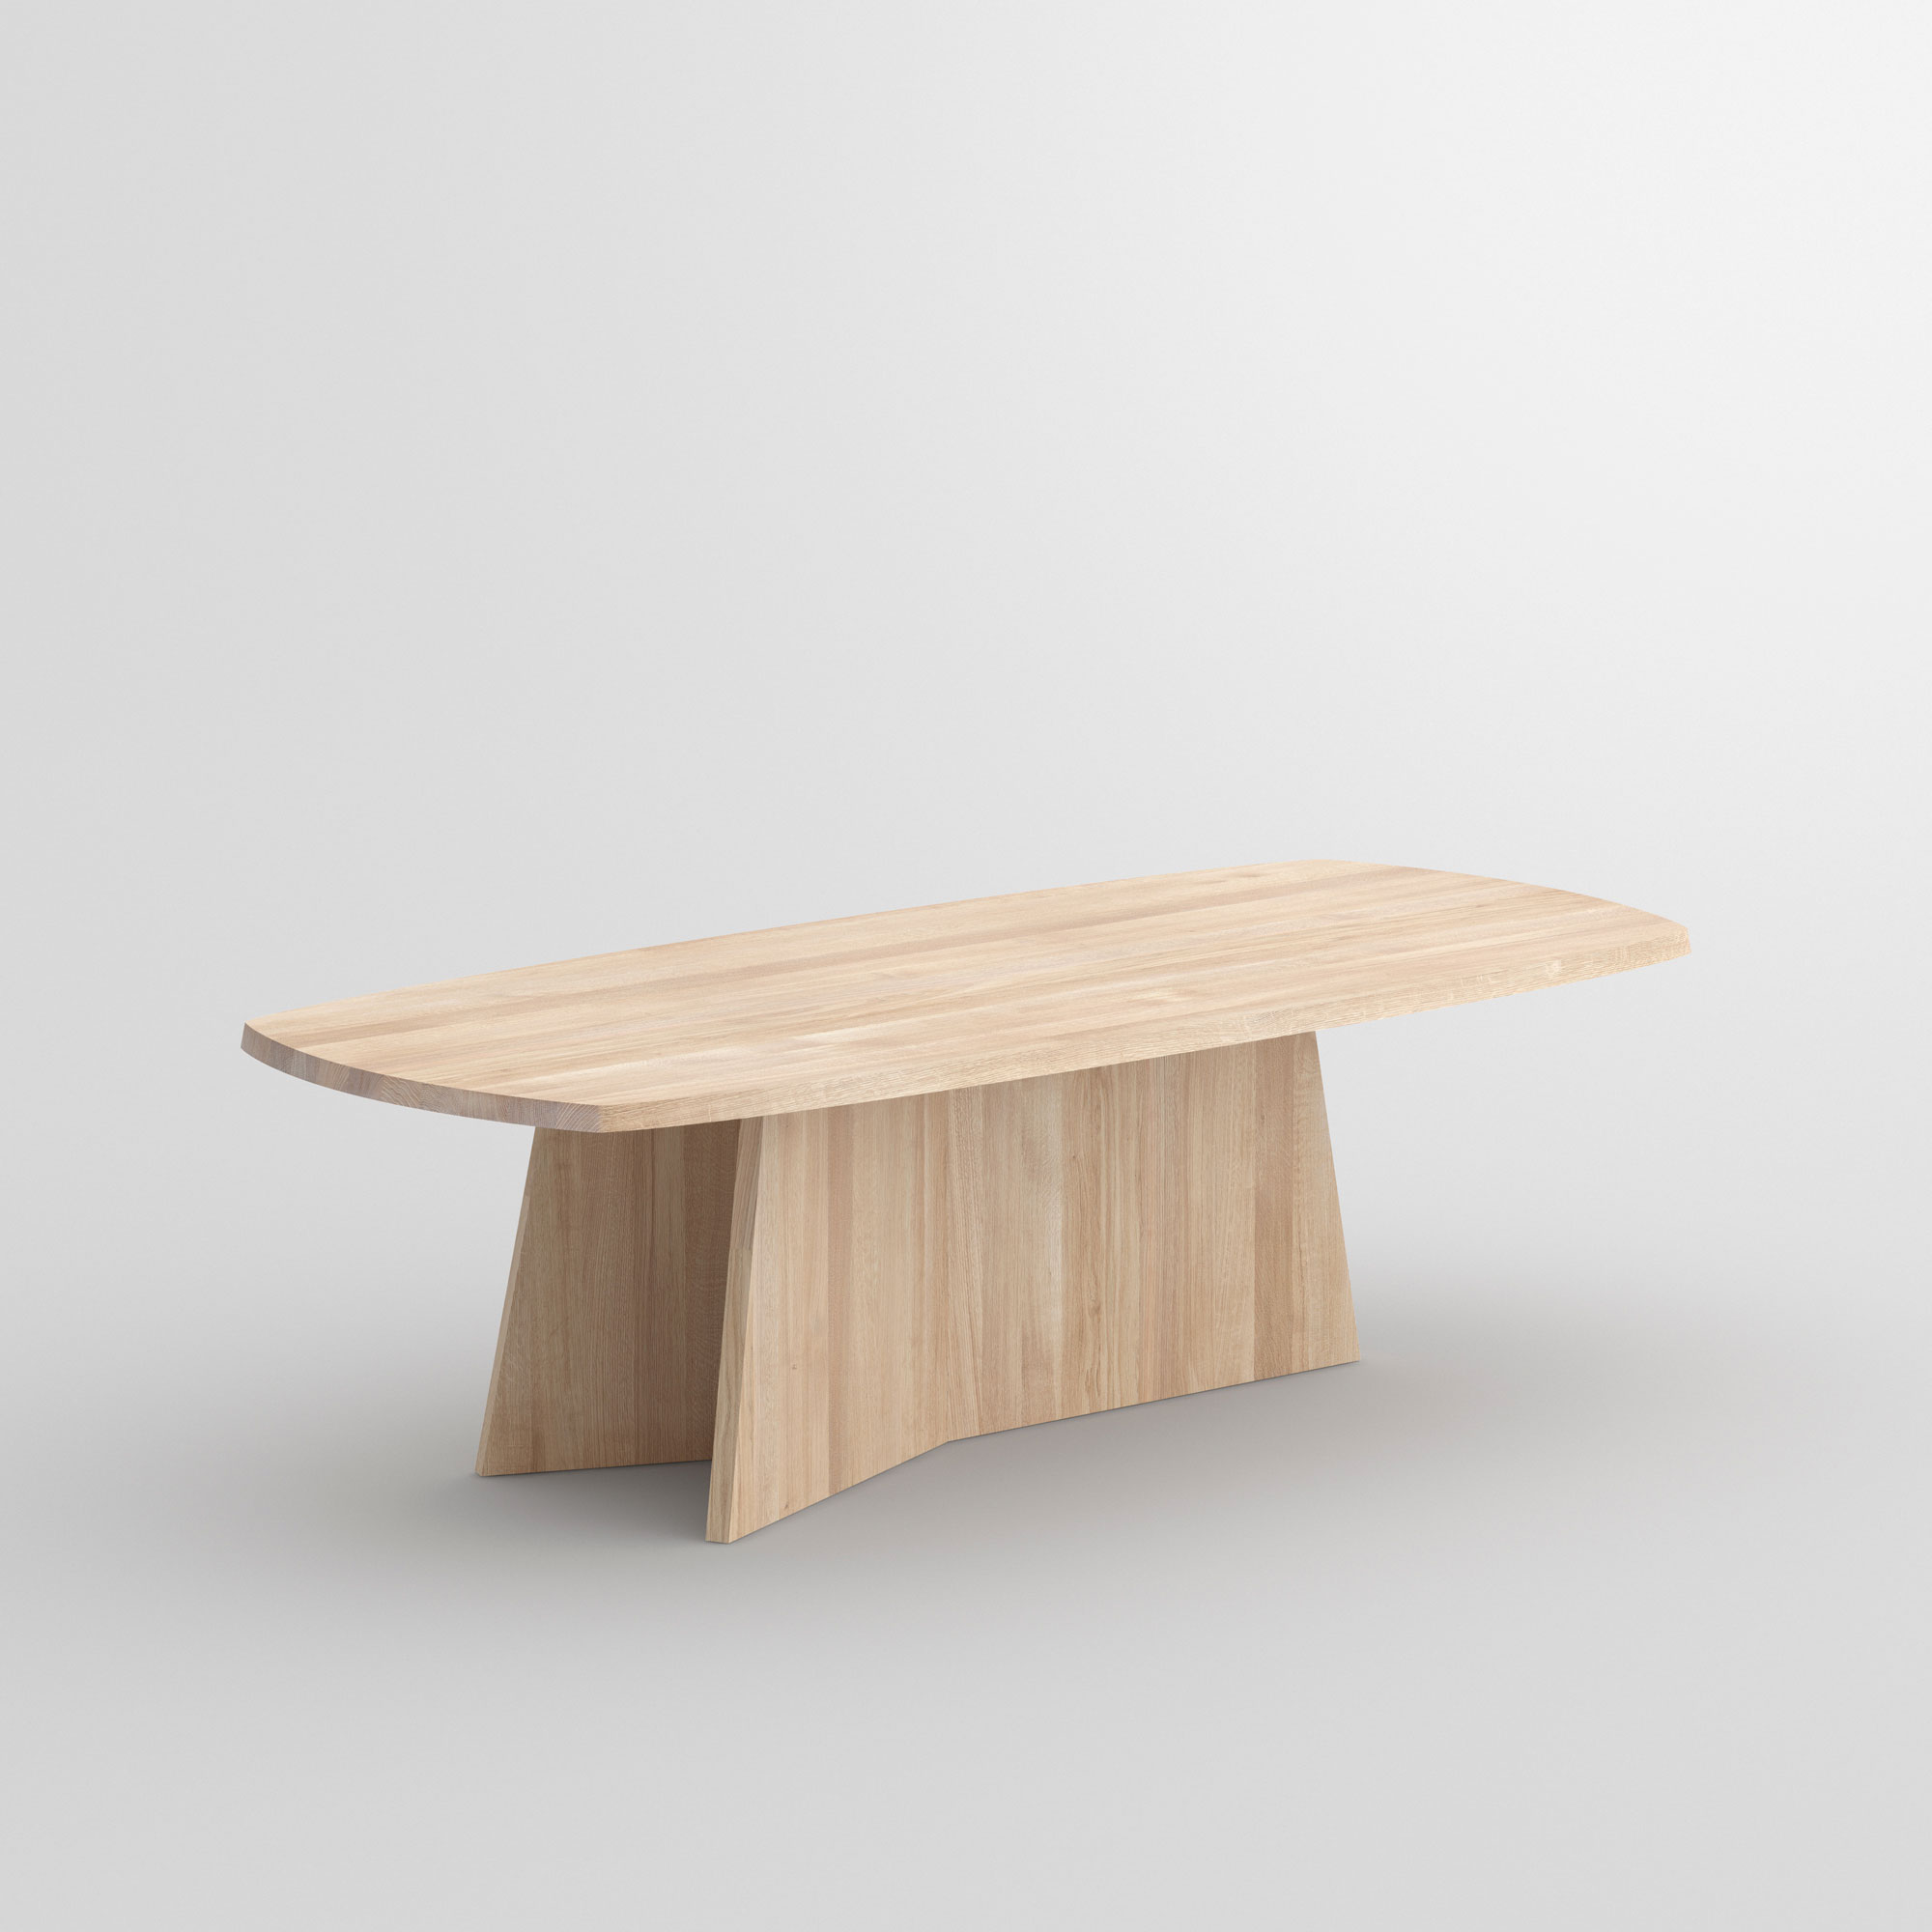 Design Dining Table LOTUS cam1 custom made in solid wood by vitamin design